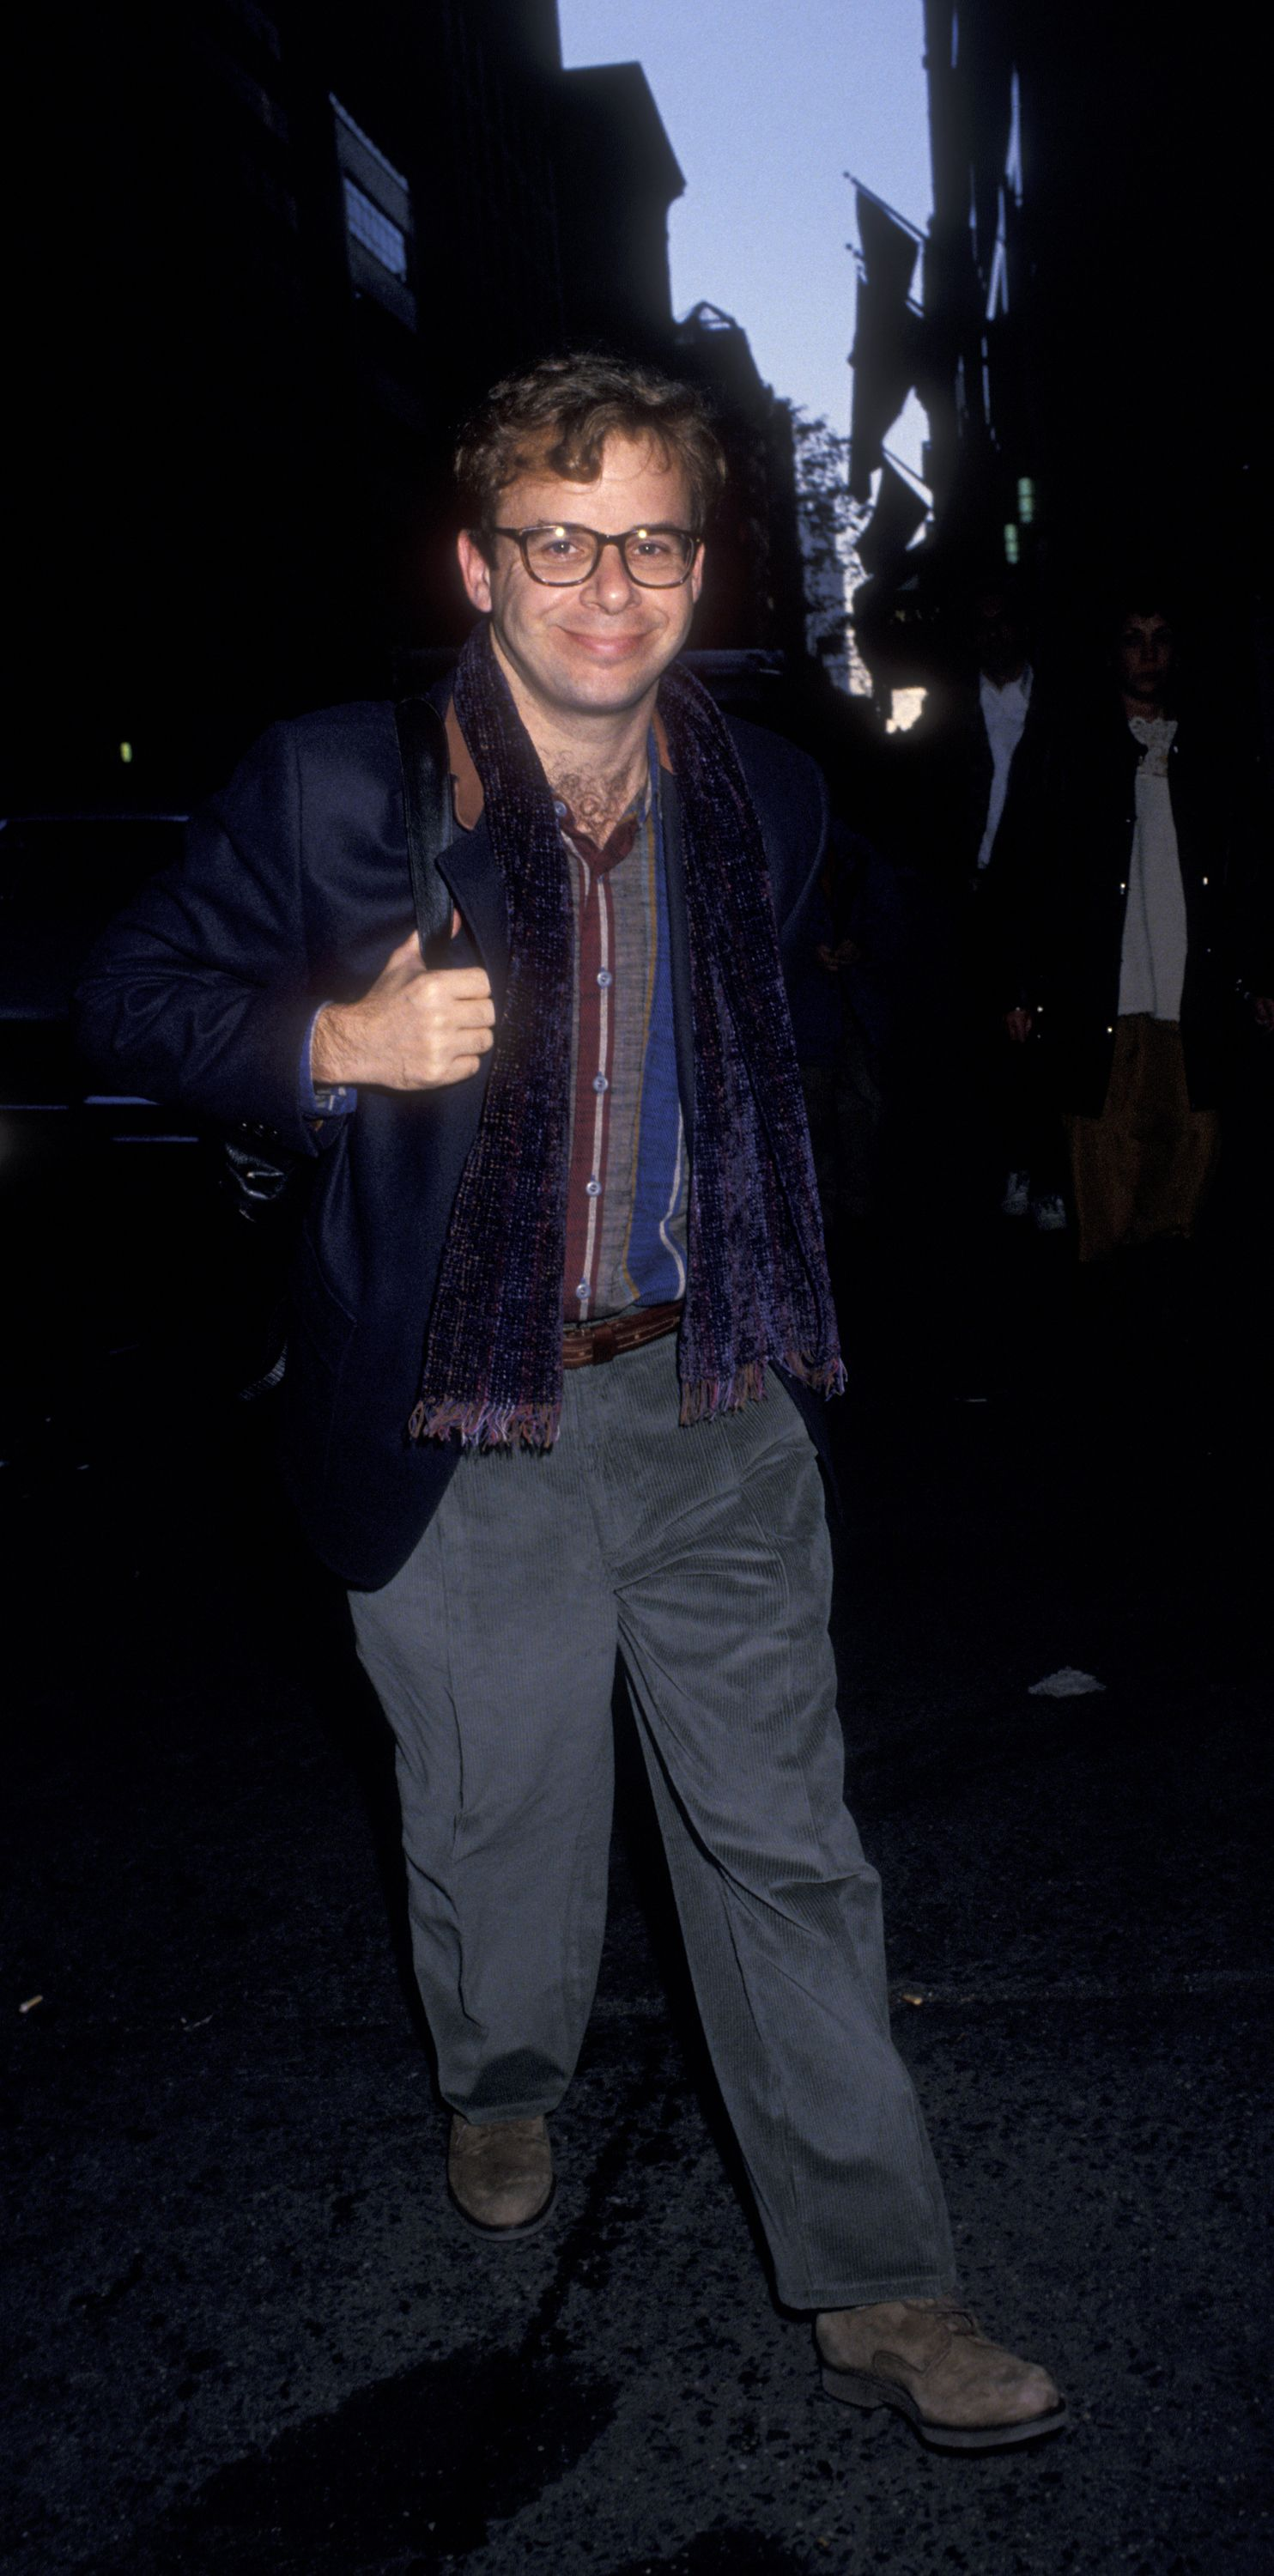 Actor Rick Moranis at the premiere of The Nutcracker on November 21, 1993 | Photo: Getty Images